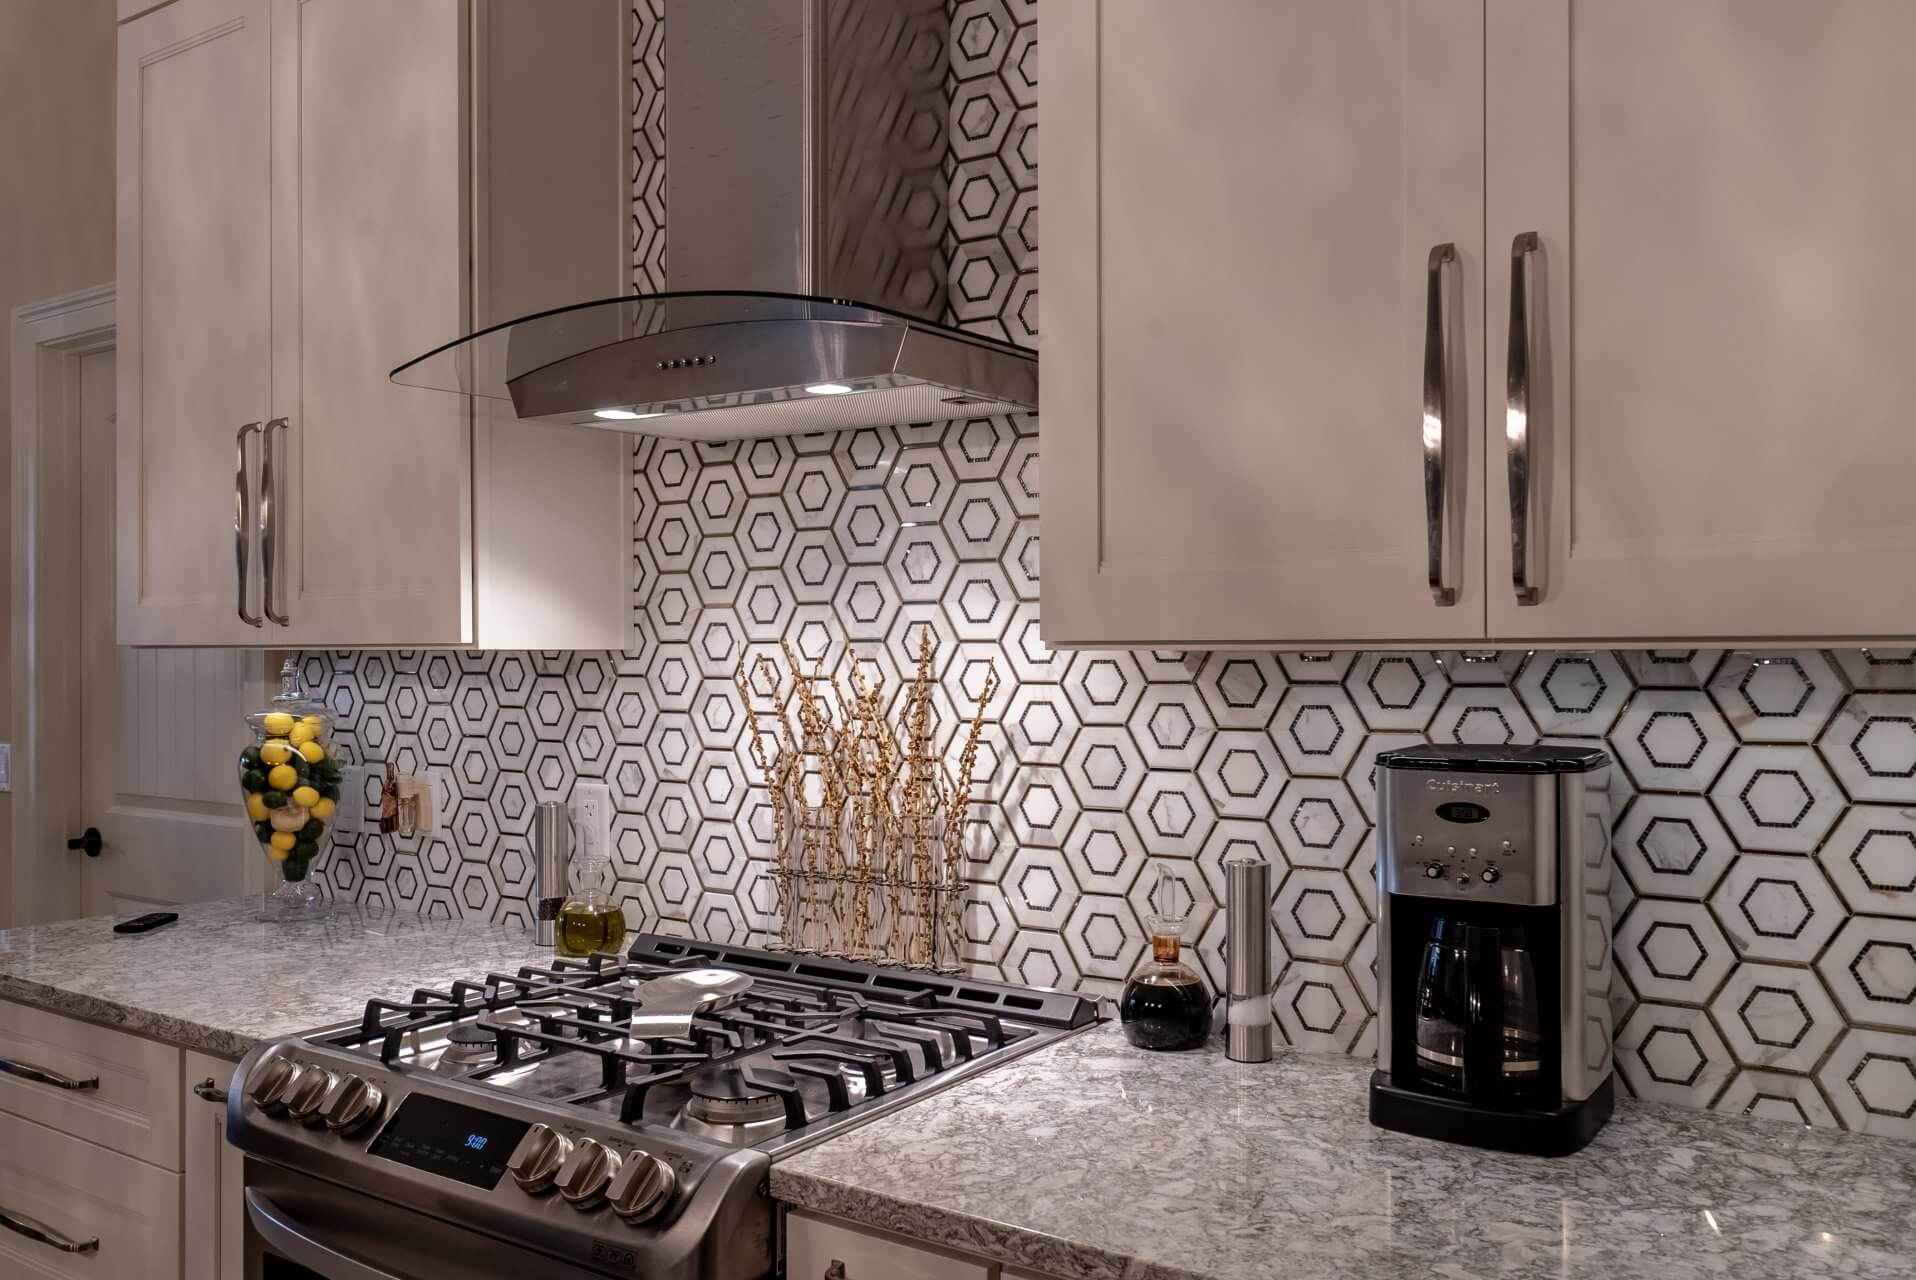 Hexagonal-tile-backsplash-and-Cambria-quartz-countertops-in-Berwyn-1916x1280.jpg